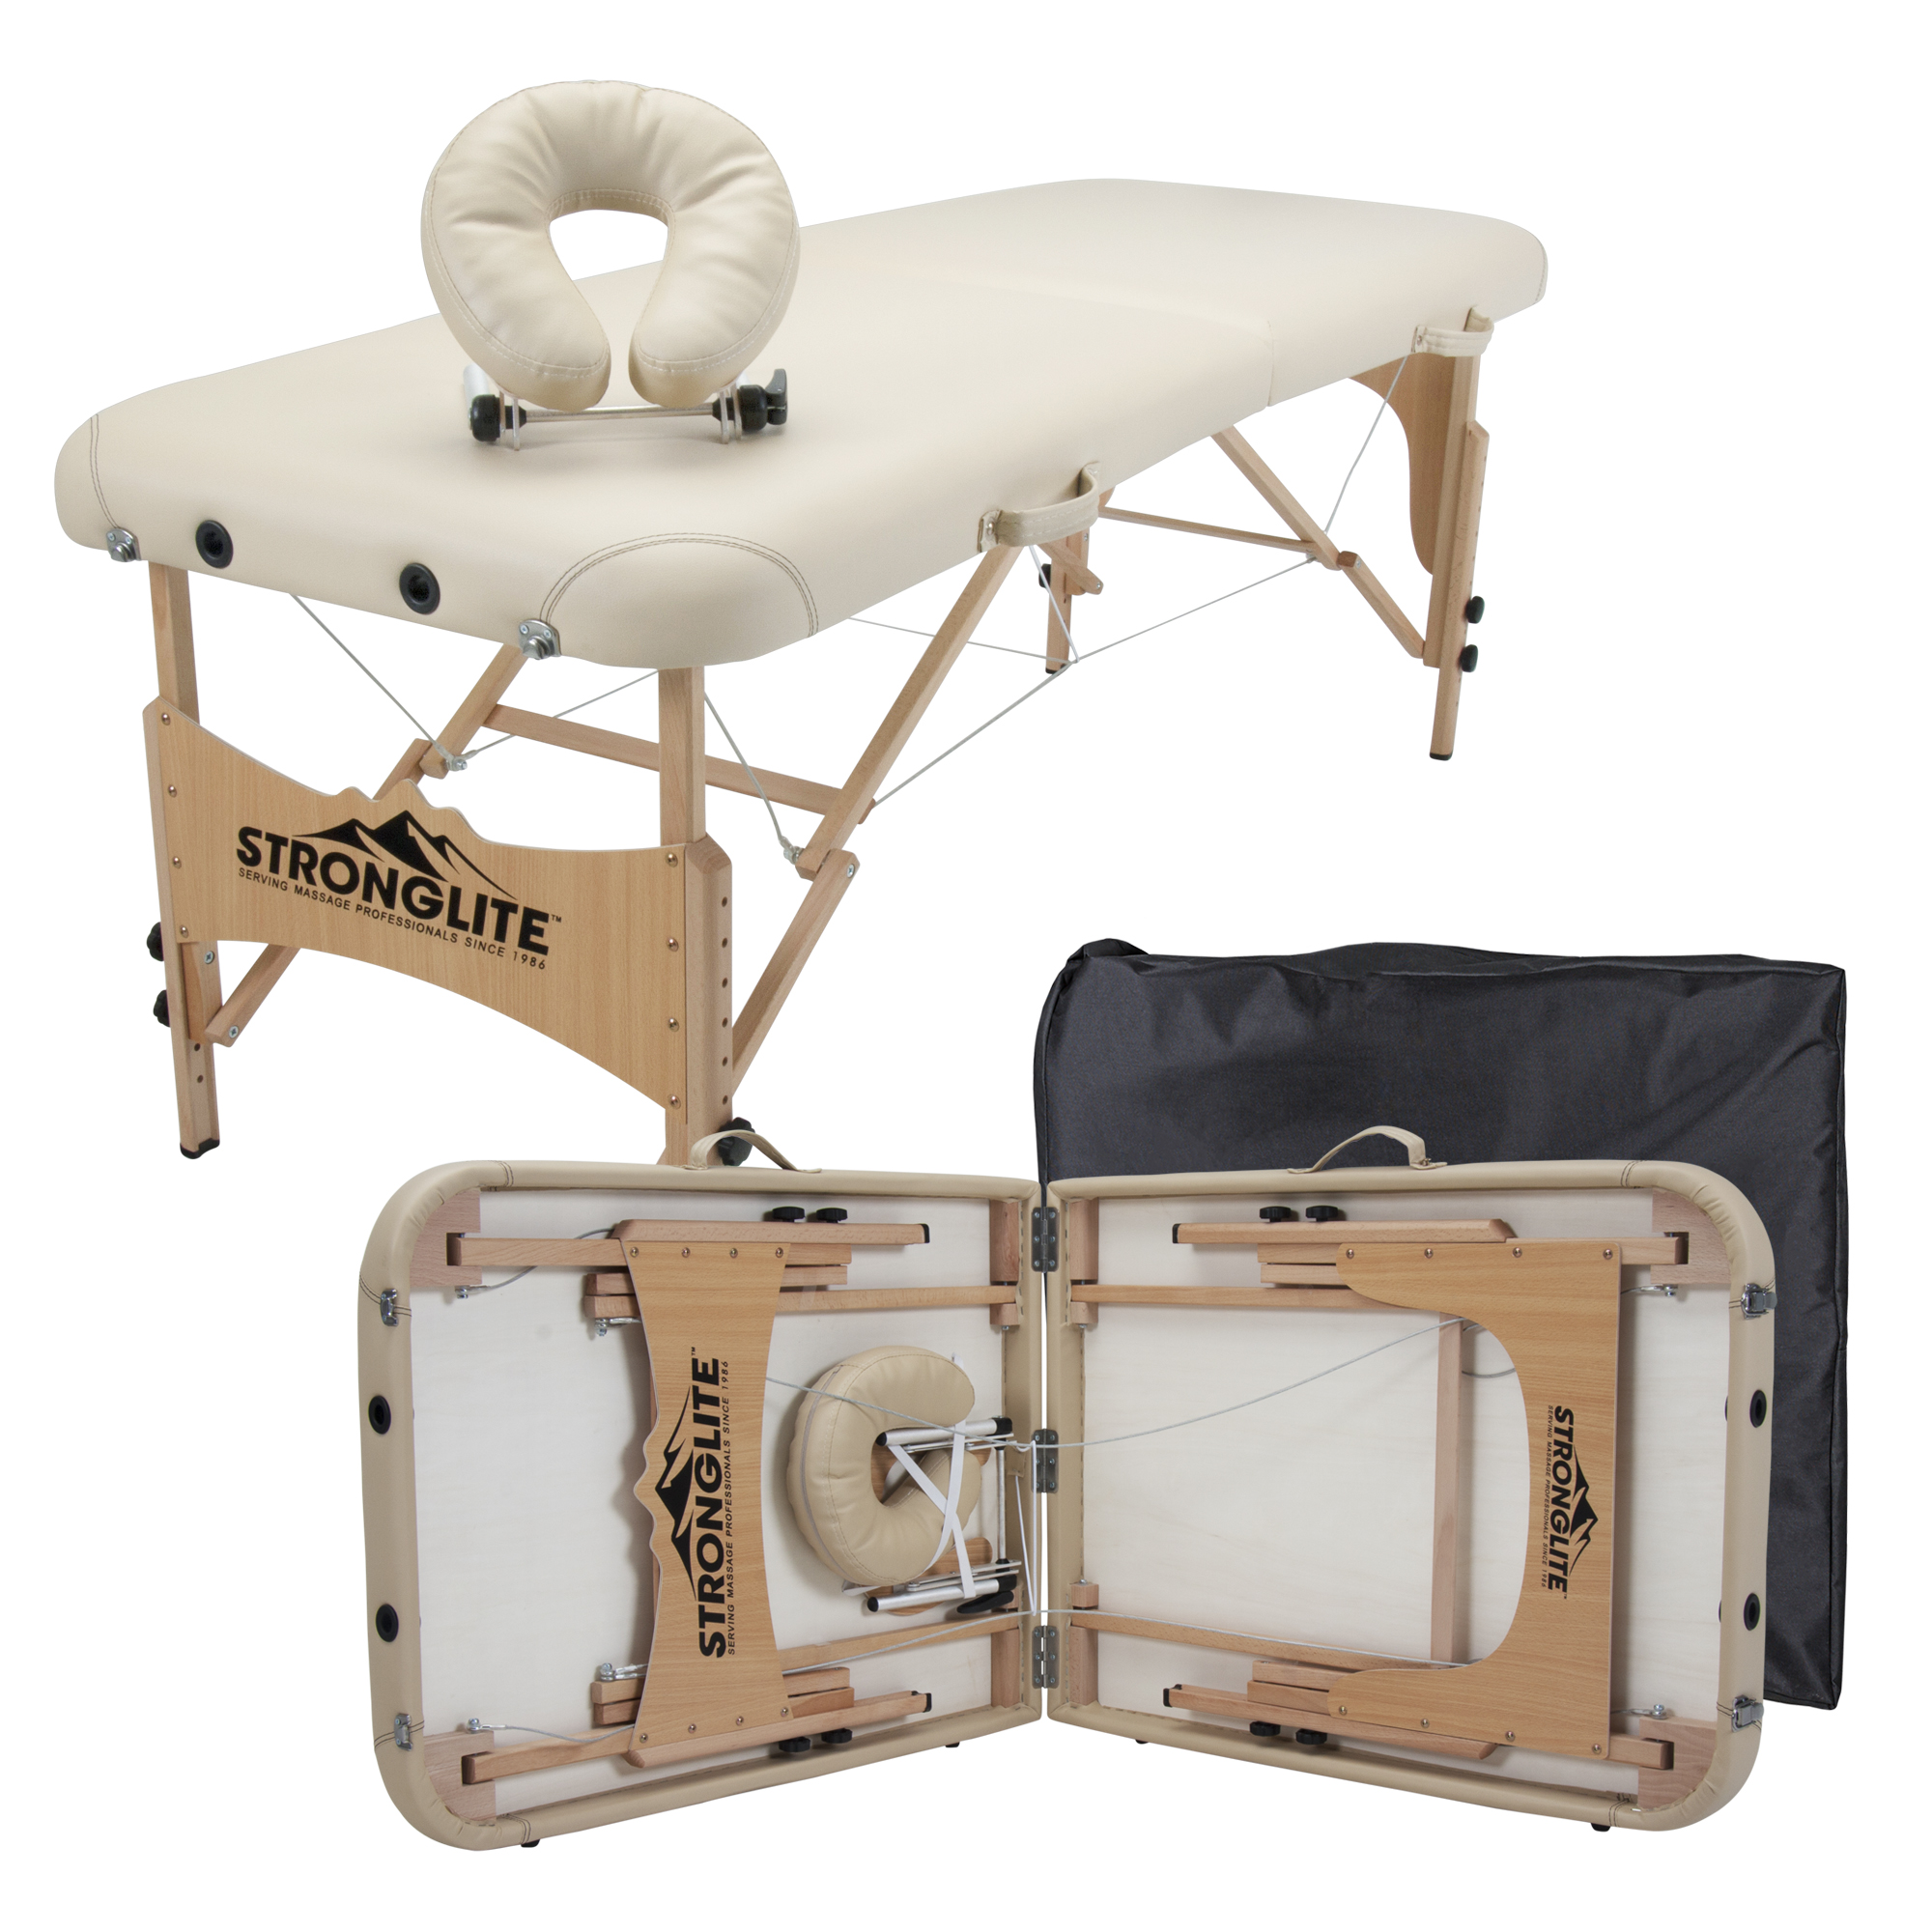 STRONGLITE Portable Massage Table Package Shasta - All-In-One Treatment Table w/ Adjustable Face Cradle, Pillow & Carrying Case